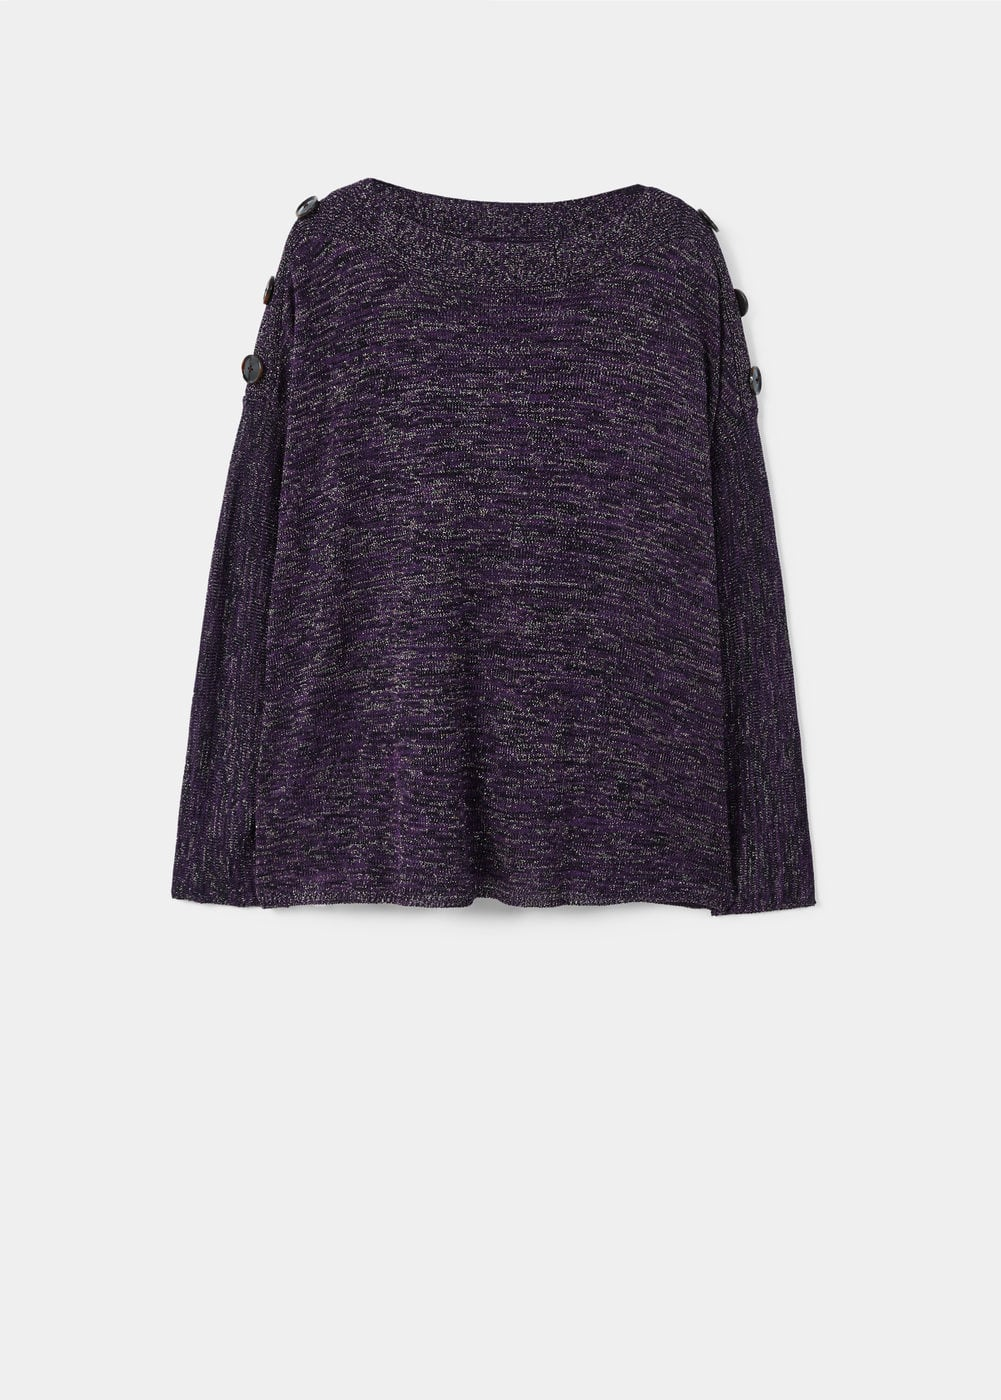 Buttoned flecked sweater | VIOLETA BY MANGO